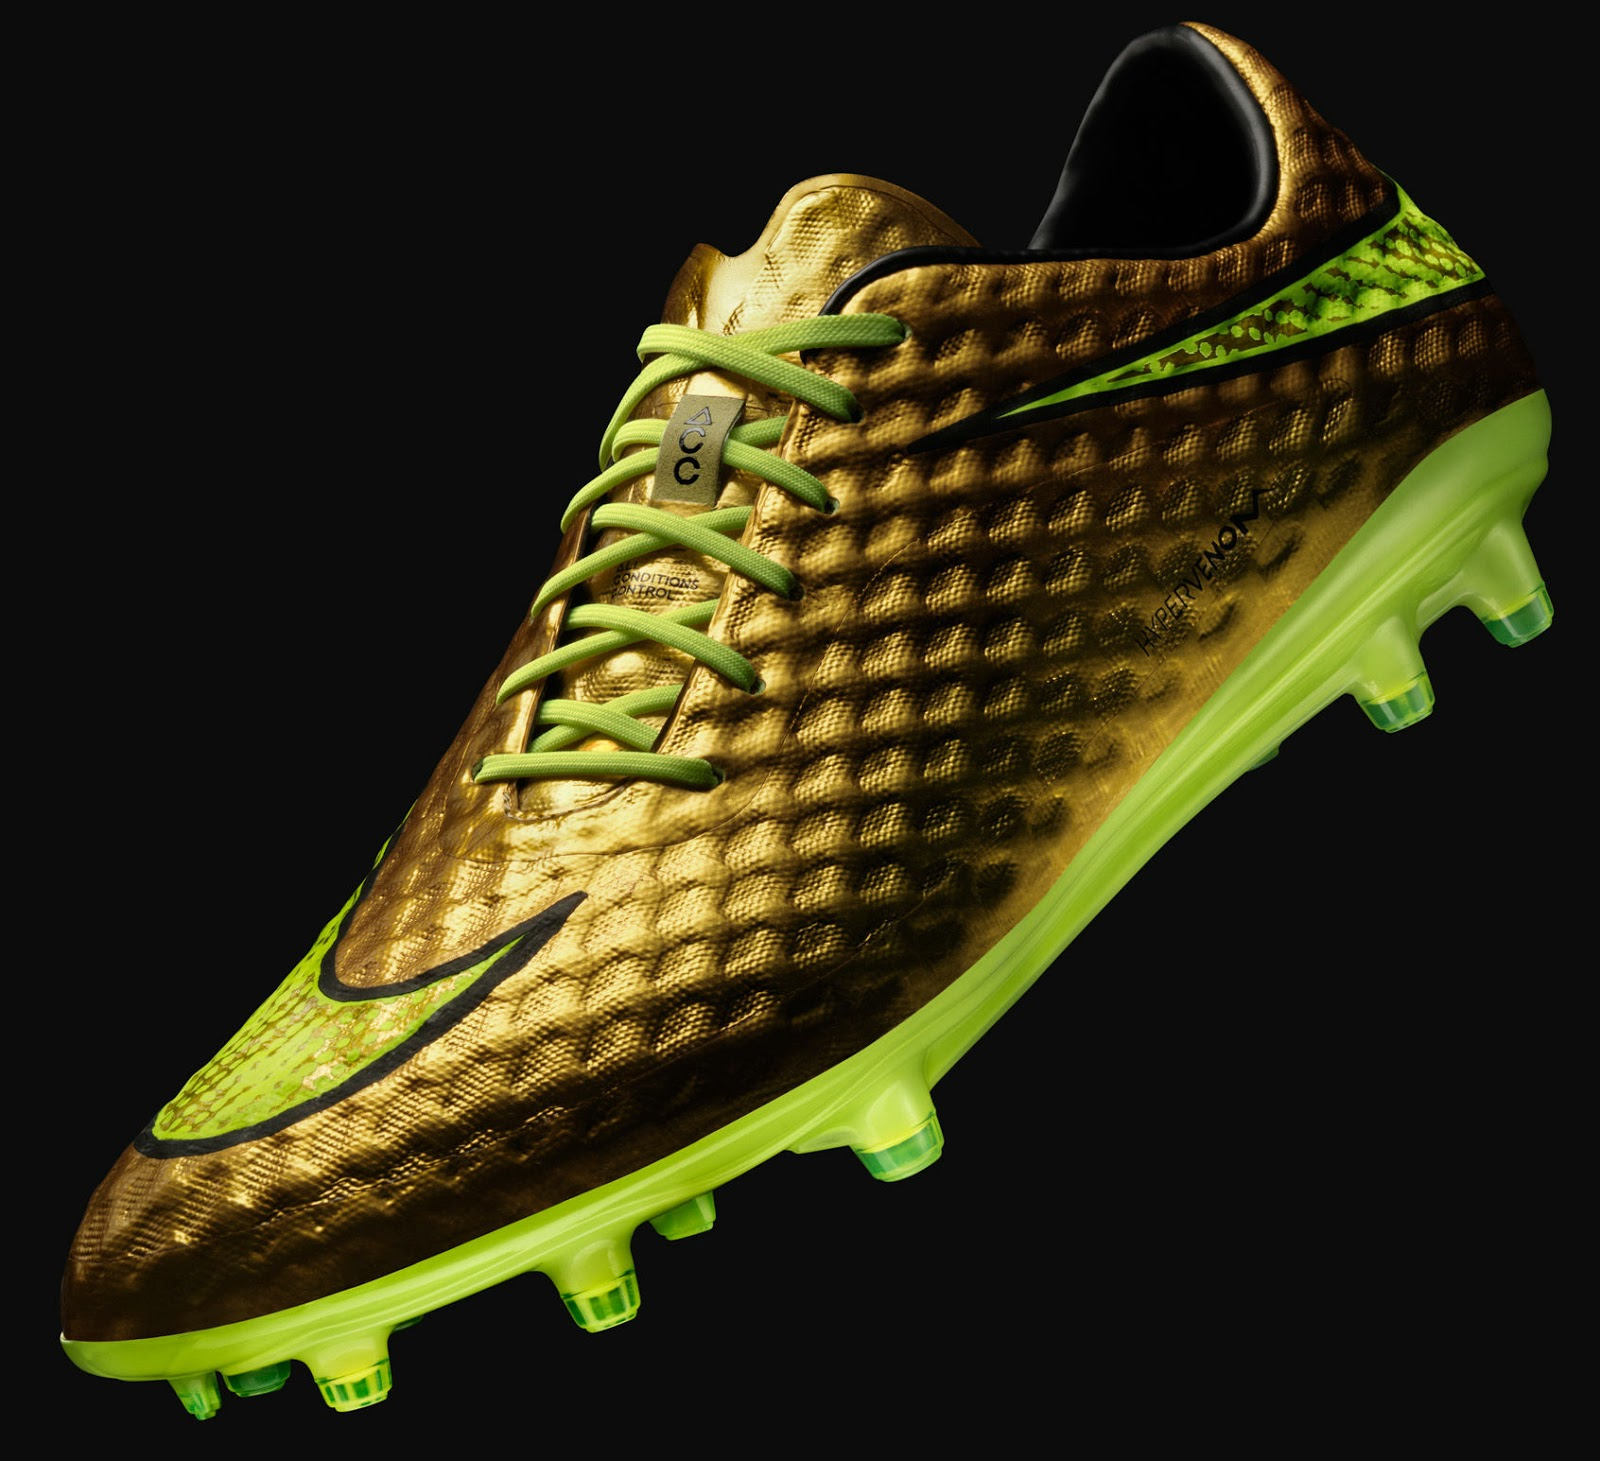 gold neymar 2014 world cup hypervenom boot unveiled